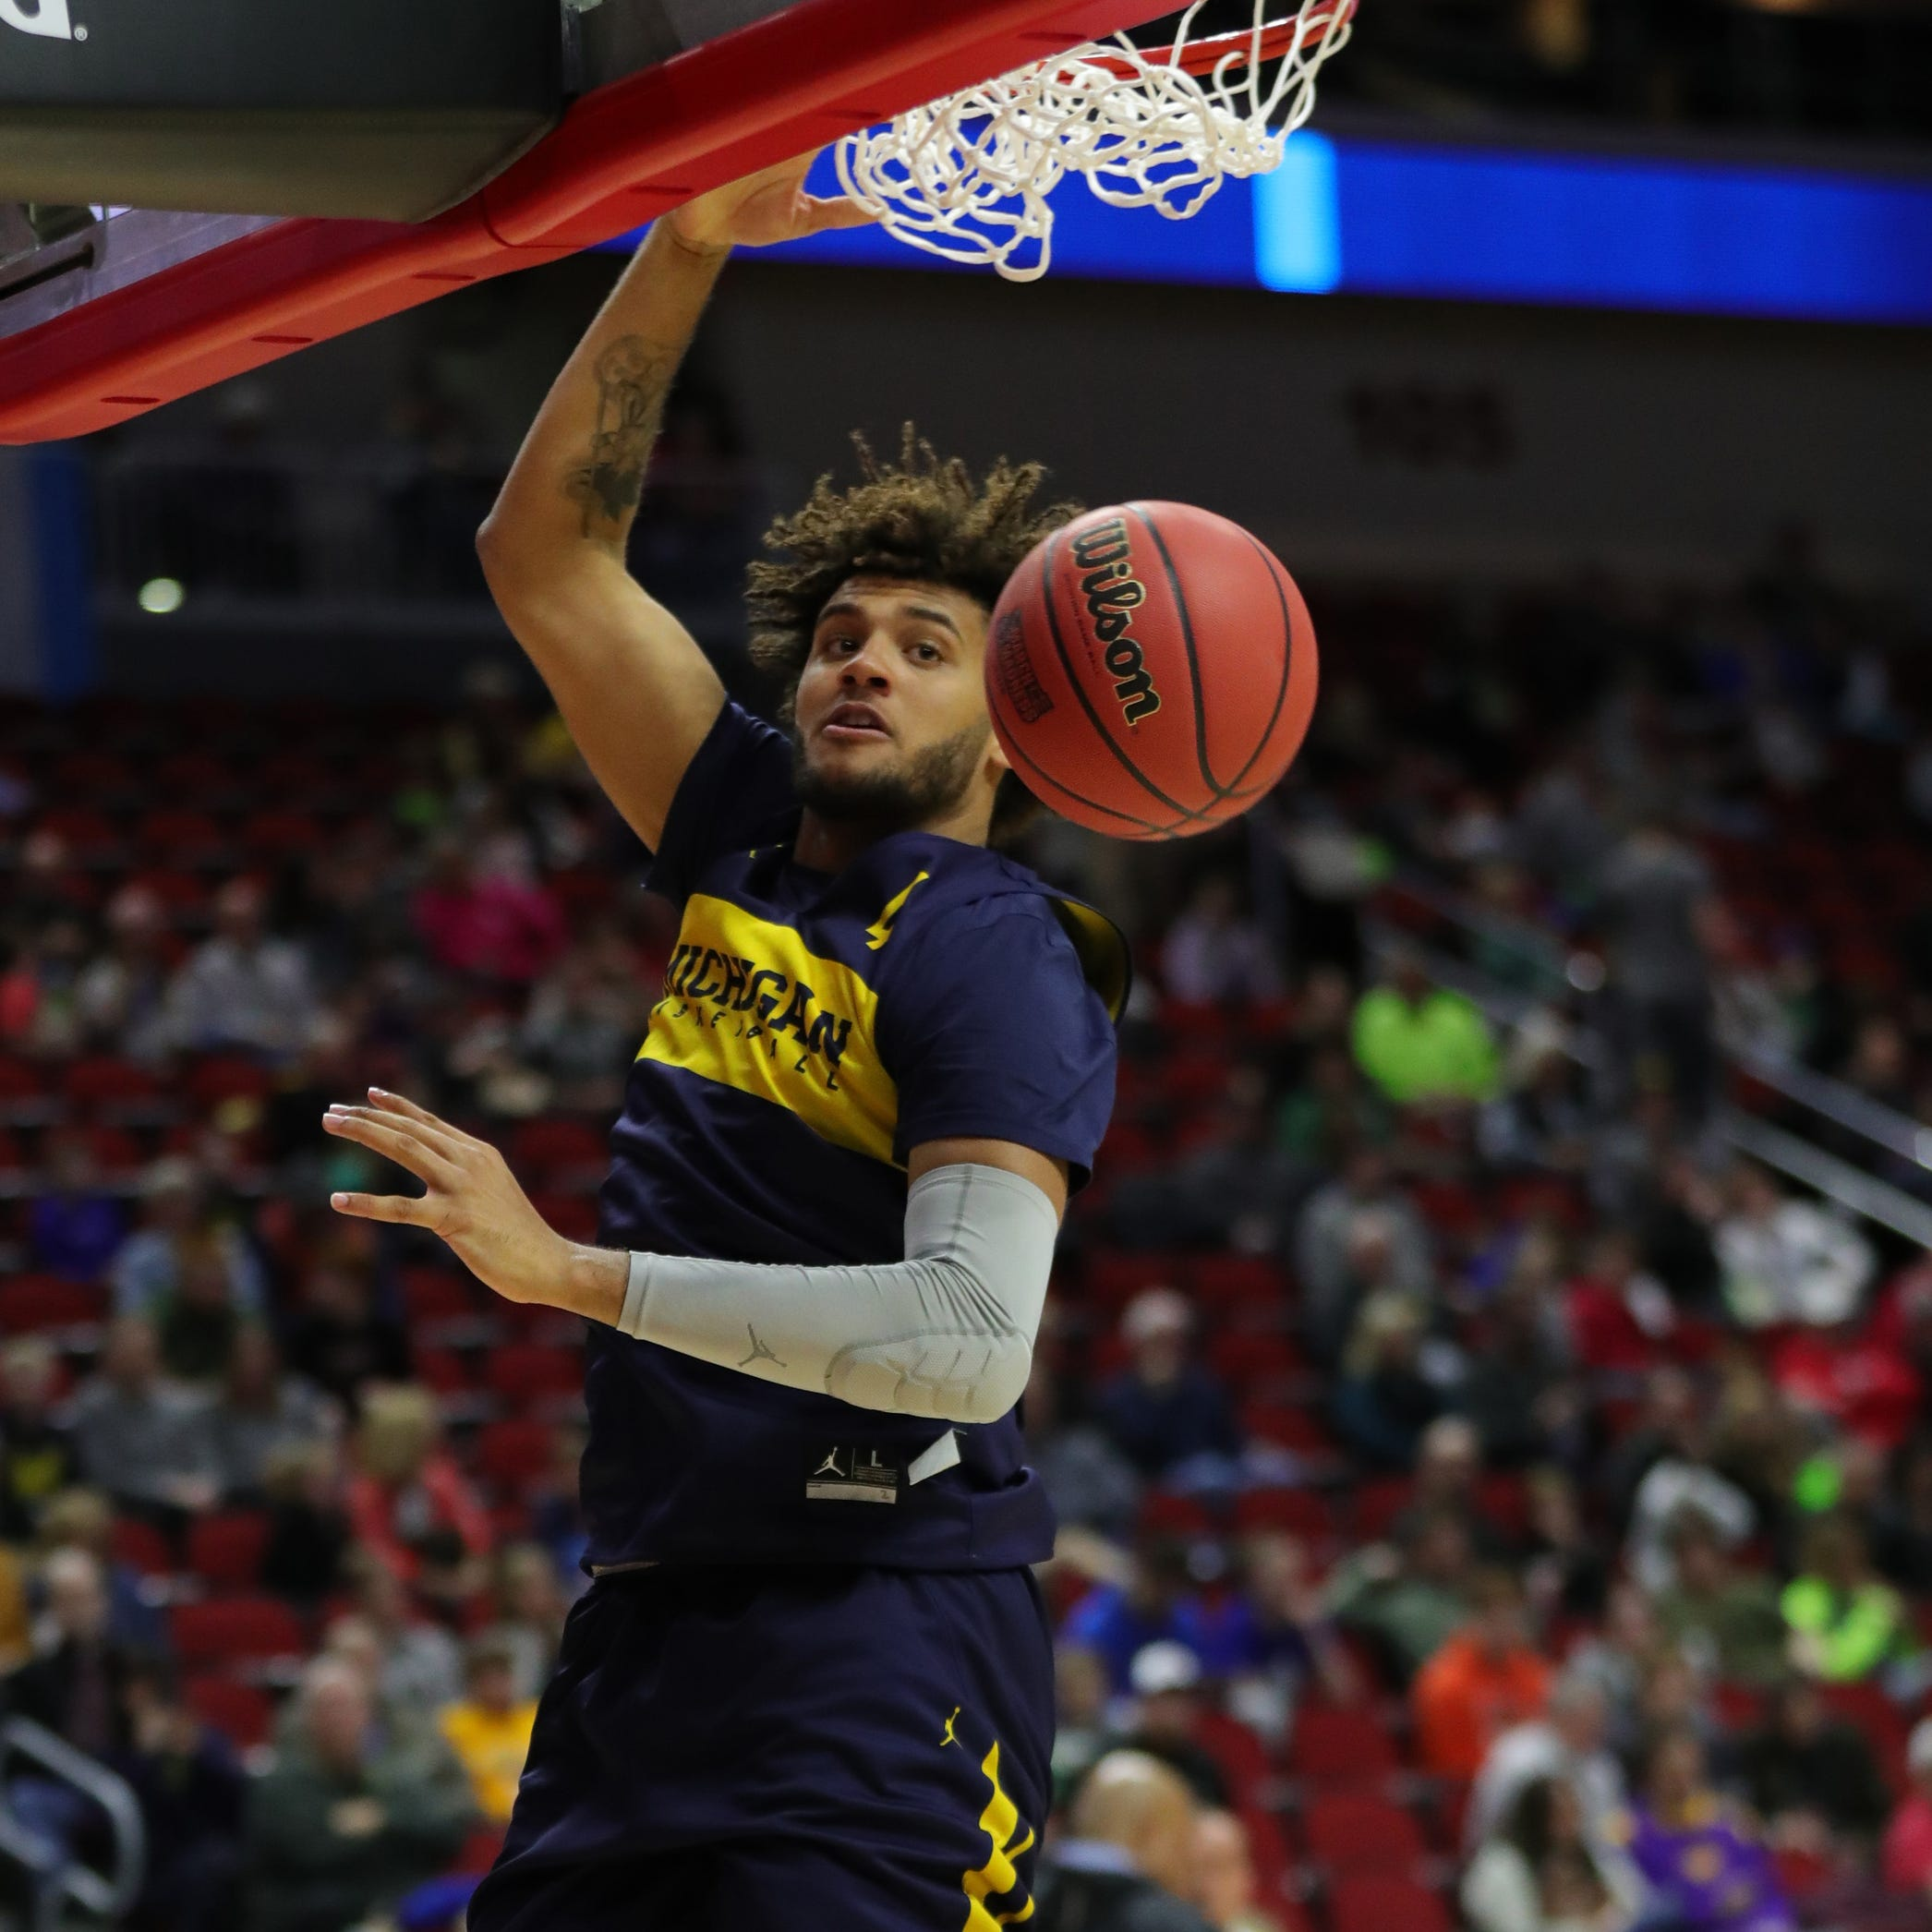 Michigan has the studs for NCAA tourney run. Now all they need is magic